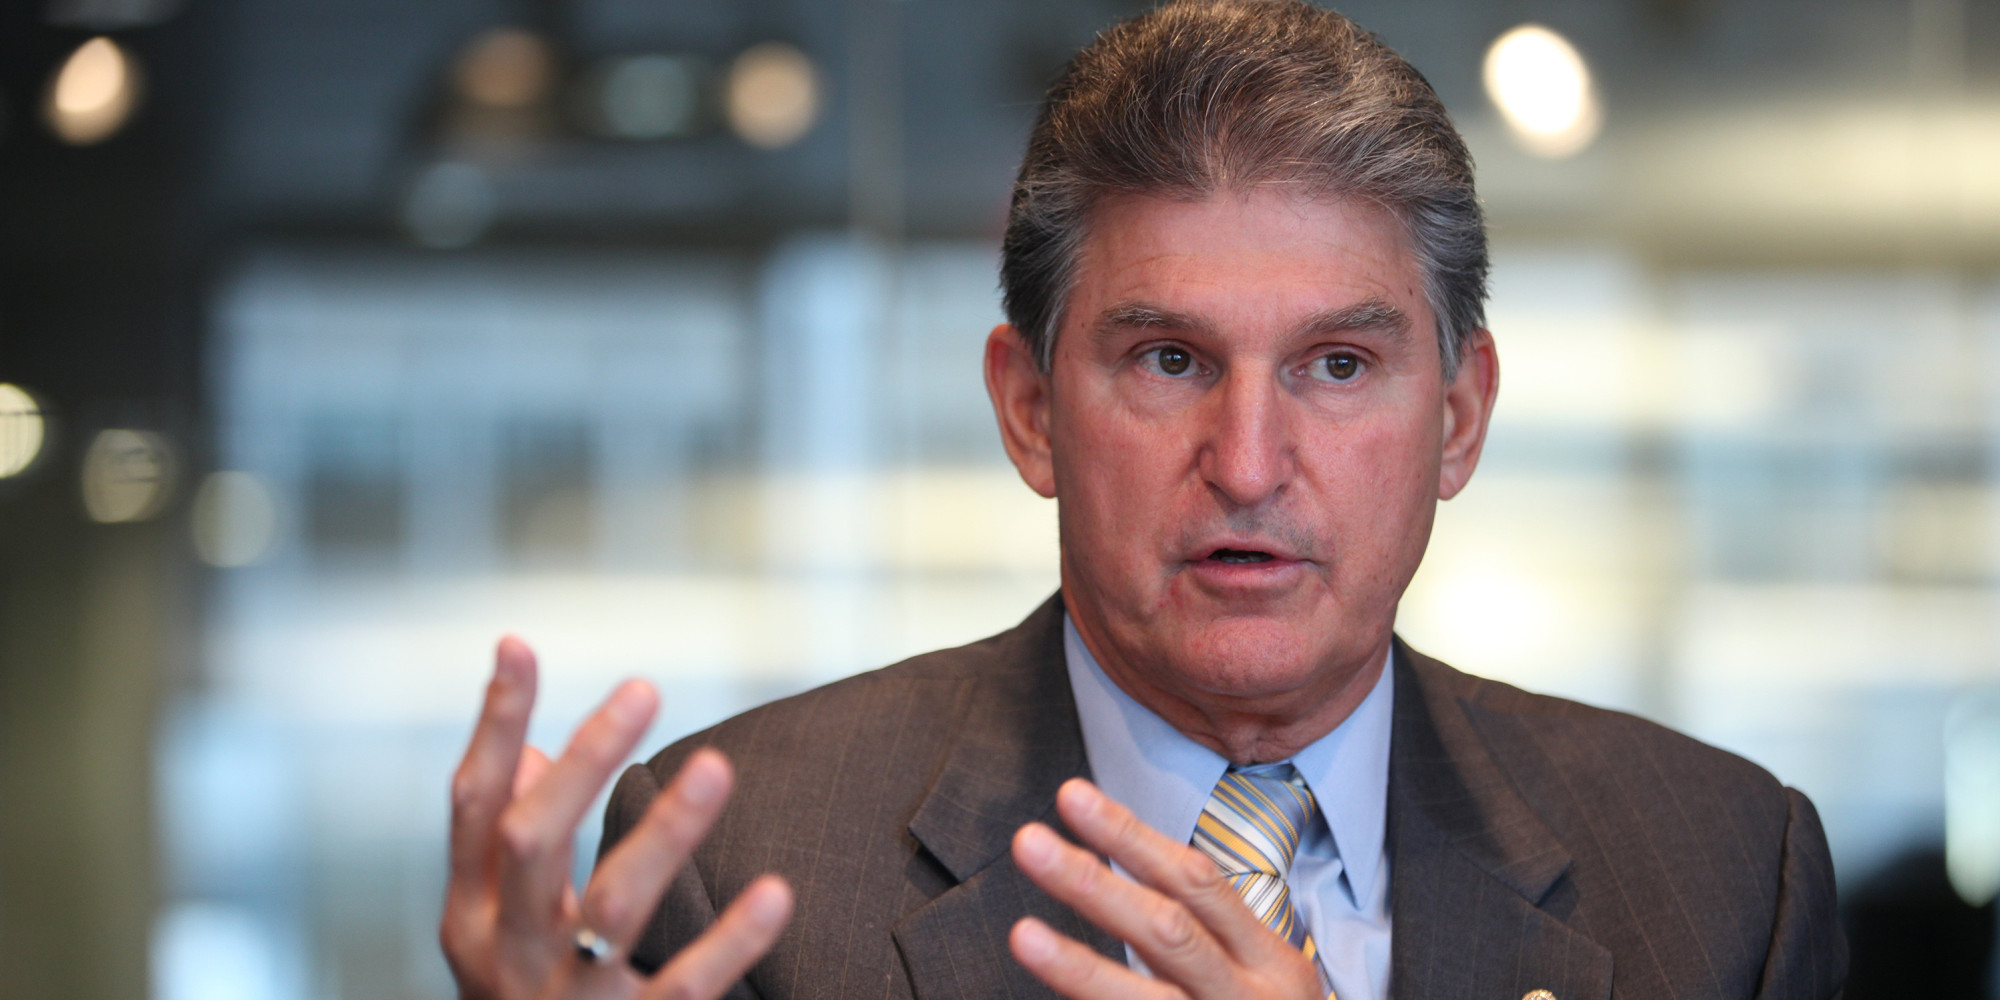 o-JOE-MANCHIN-facebook.jpg